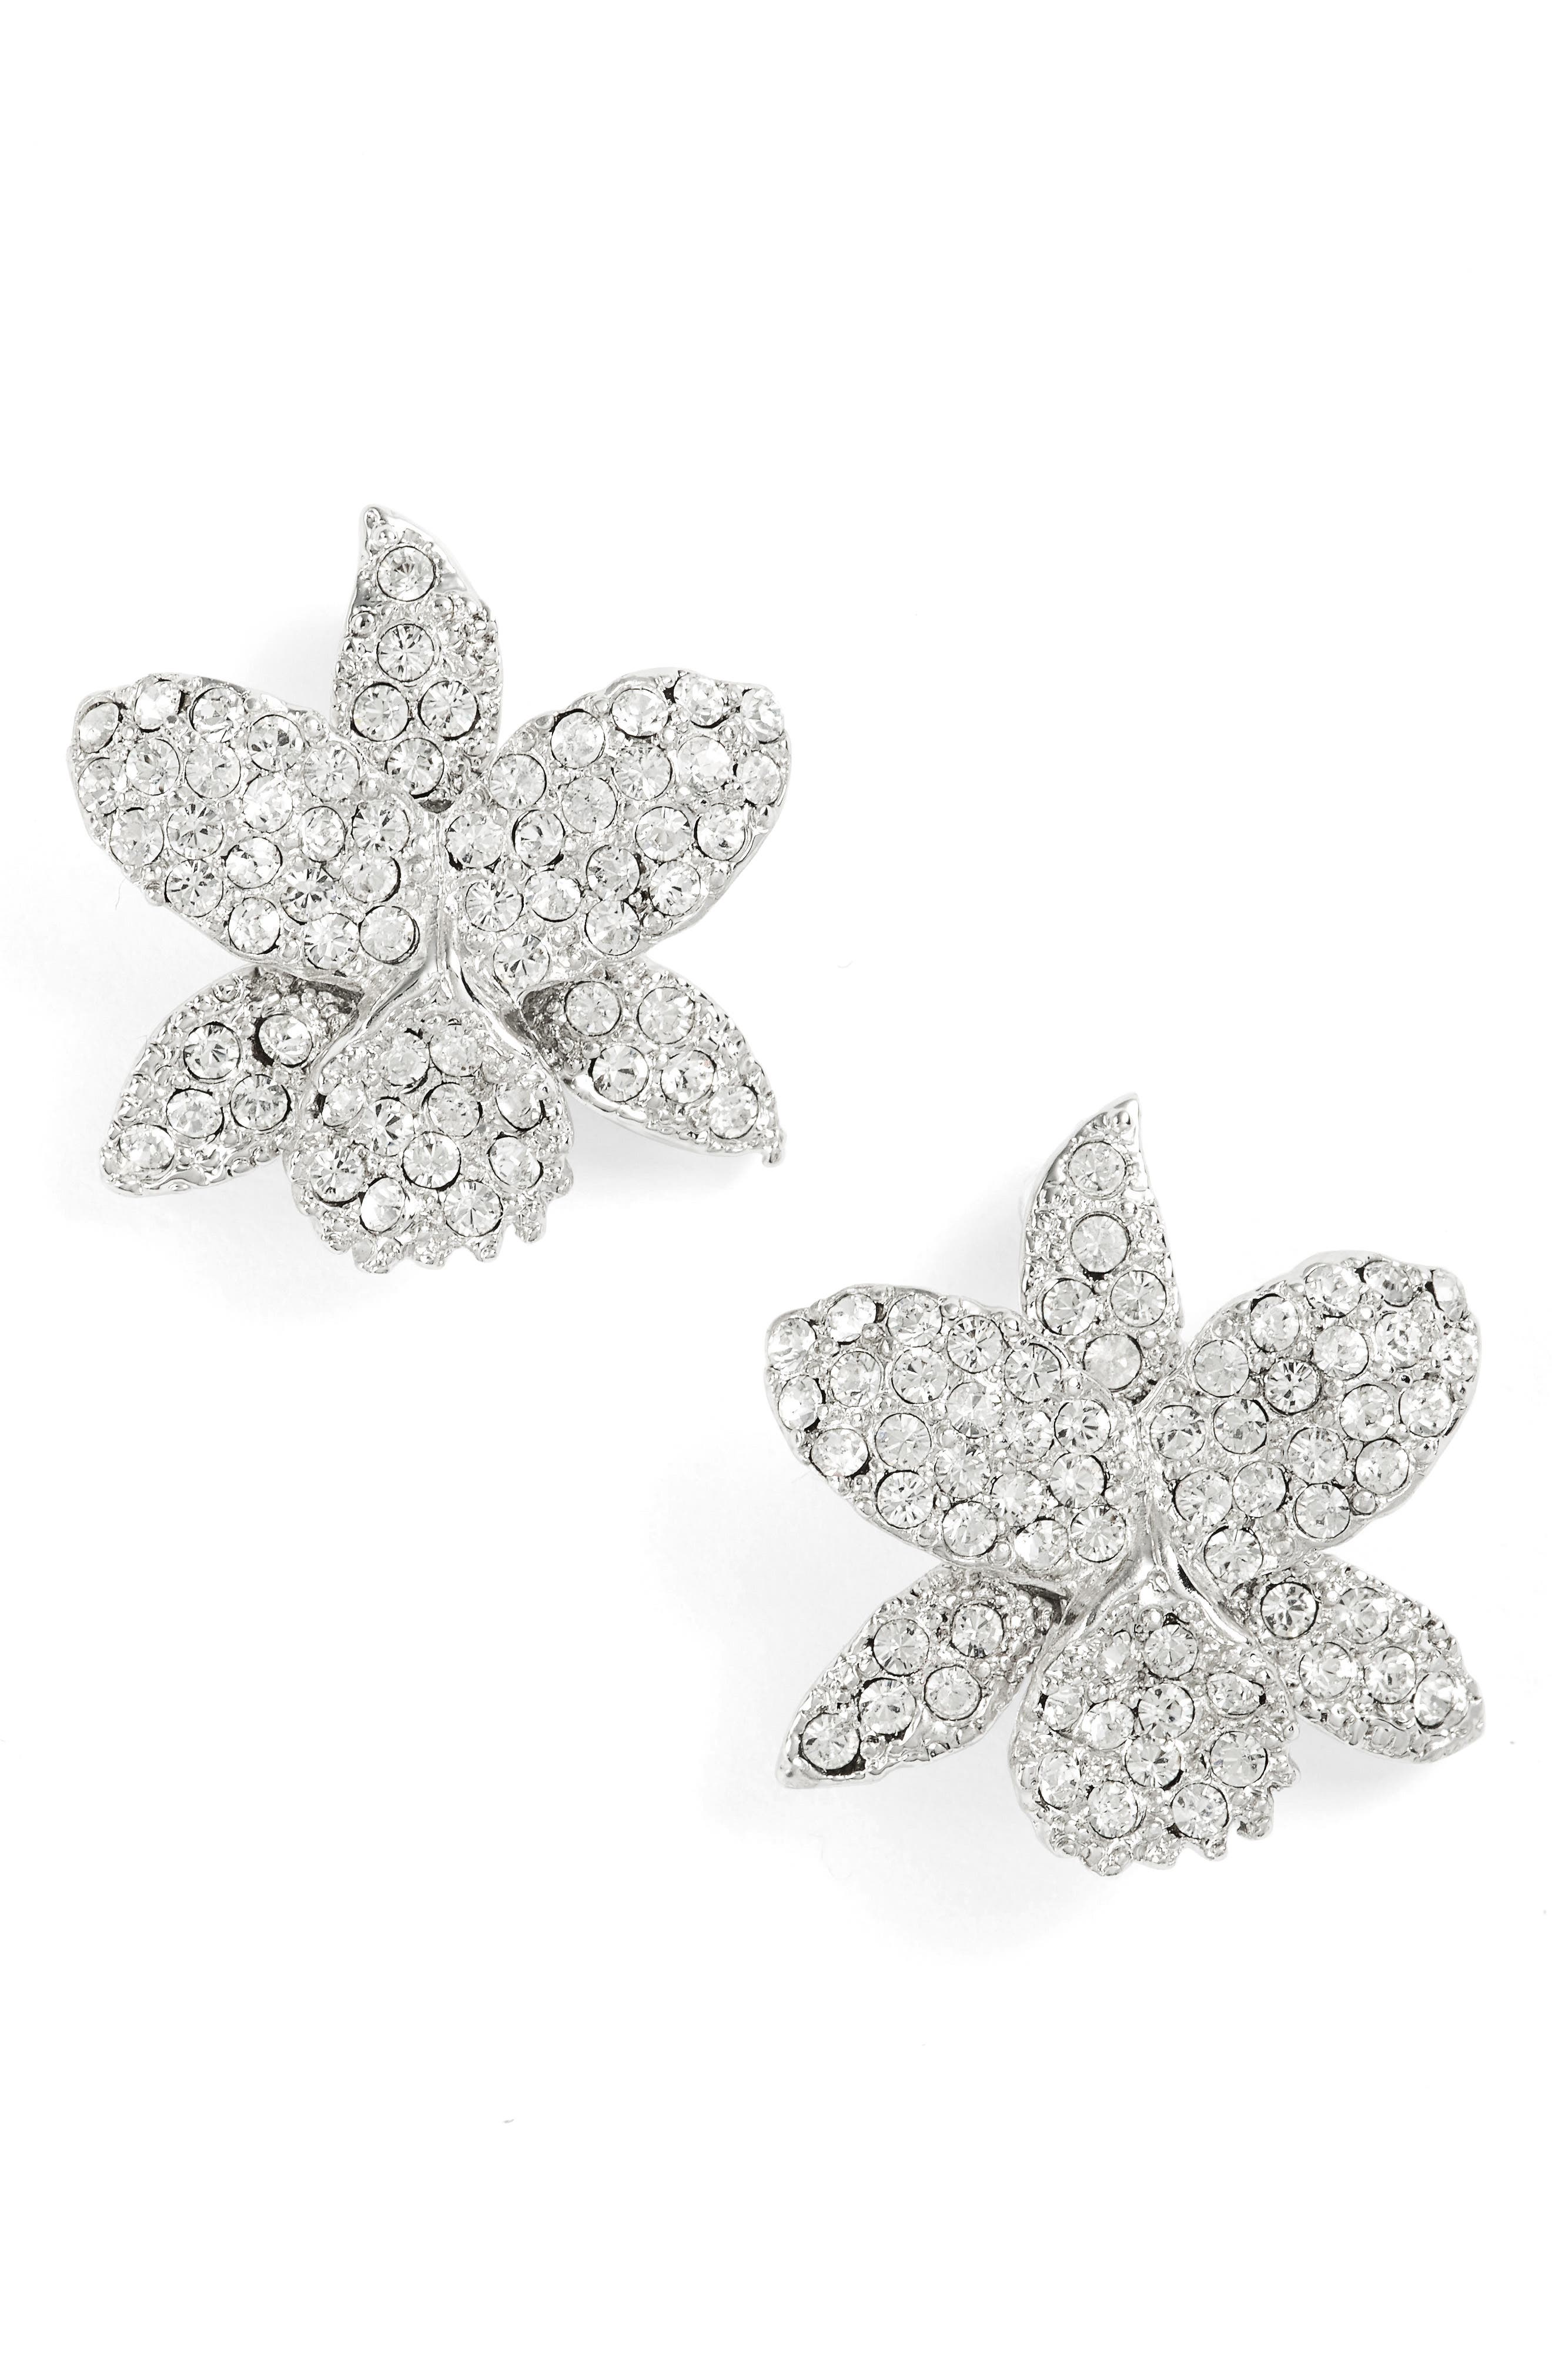 Small Orchid Swarovski Crystal Stud Earrings,                             Main thumbnail 1, color,                             SILVER